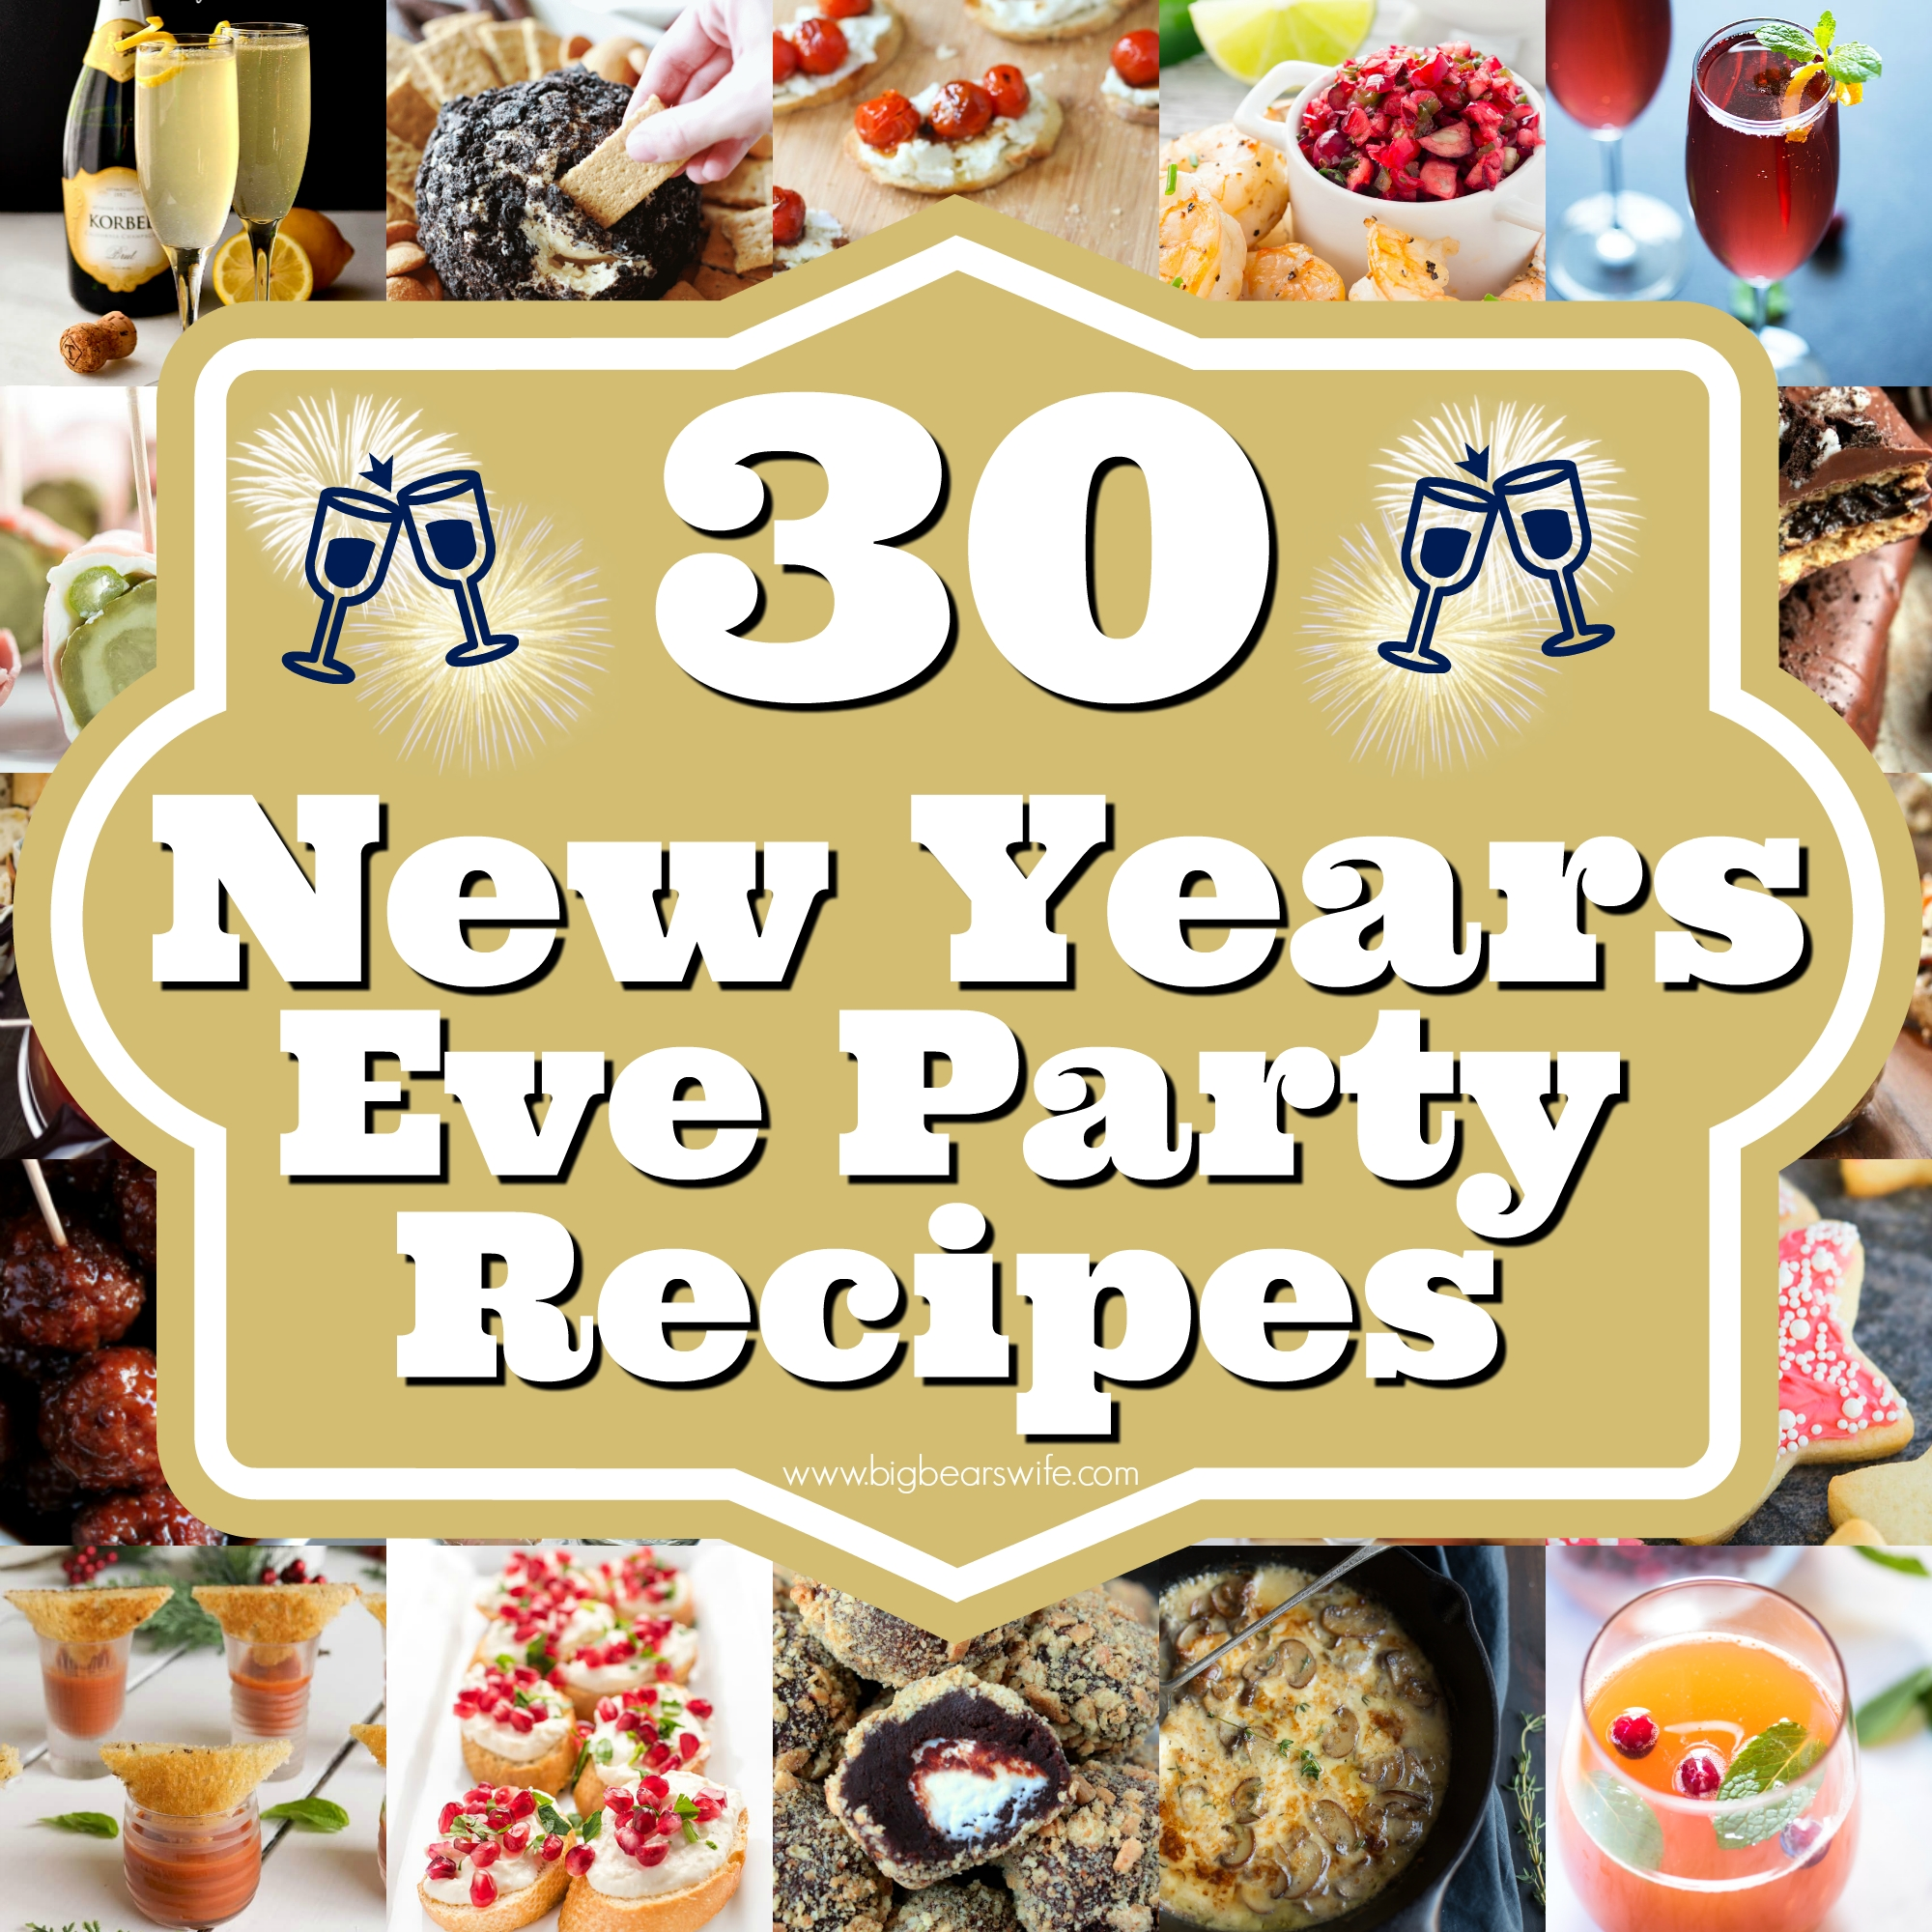 10 Stylish New Years Party Food Ideas 30 new years eve party recipes savory ideas sweets and cocktails 1 2021